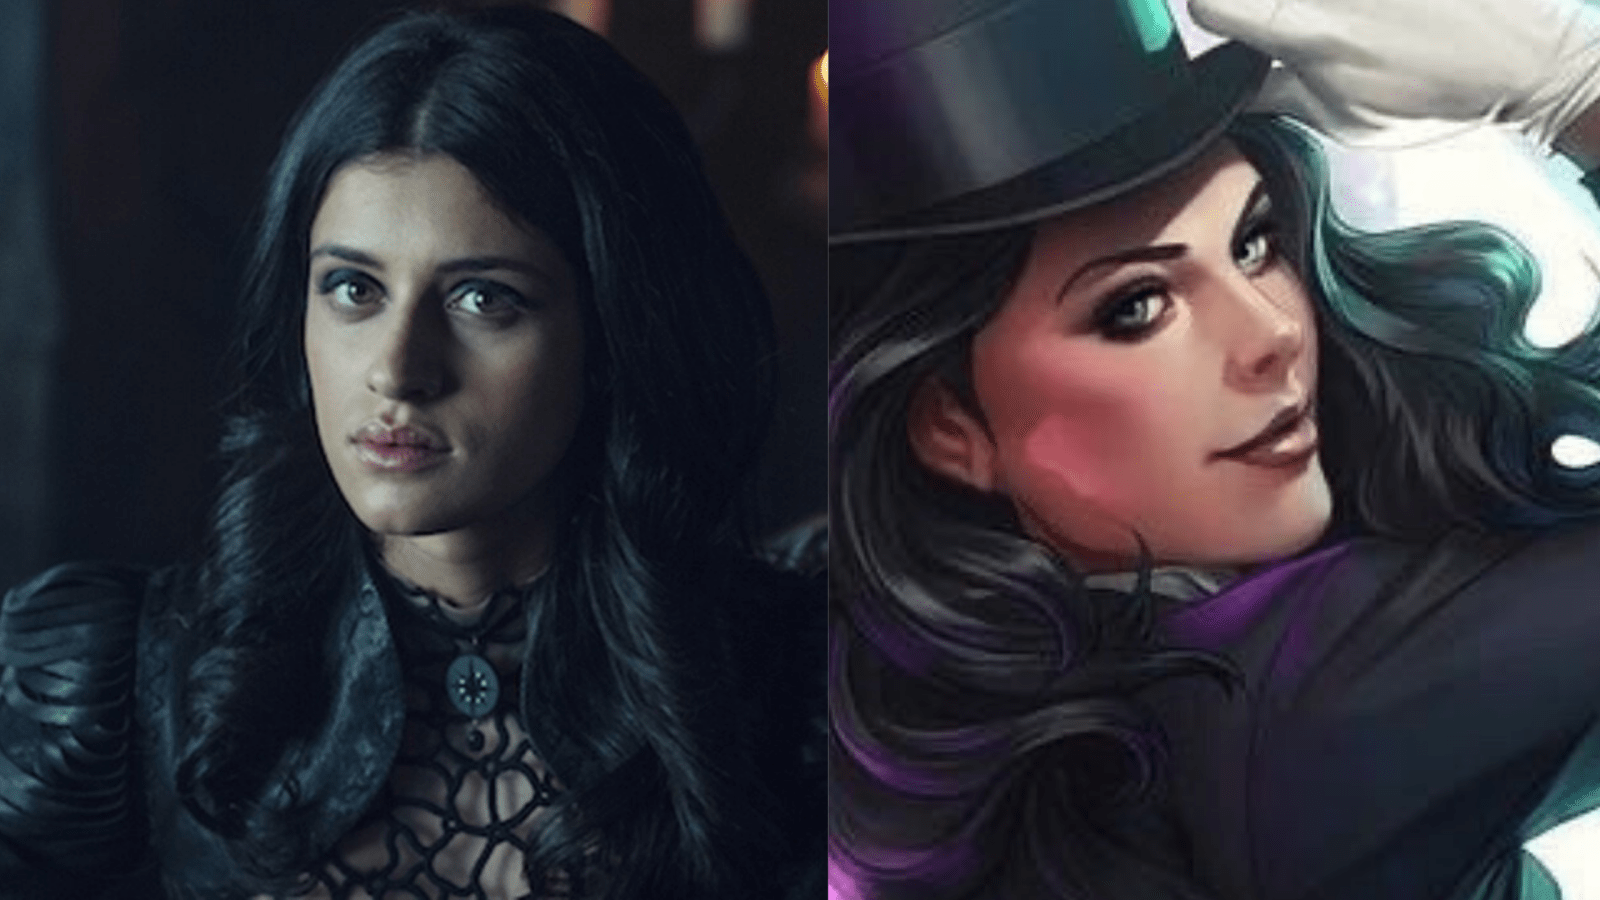 The Witcher's Star Anya Chalotra Eyed To Play Zatanna